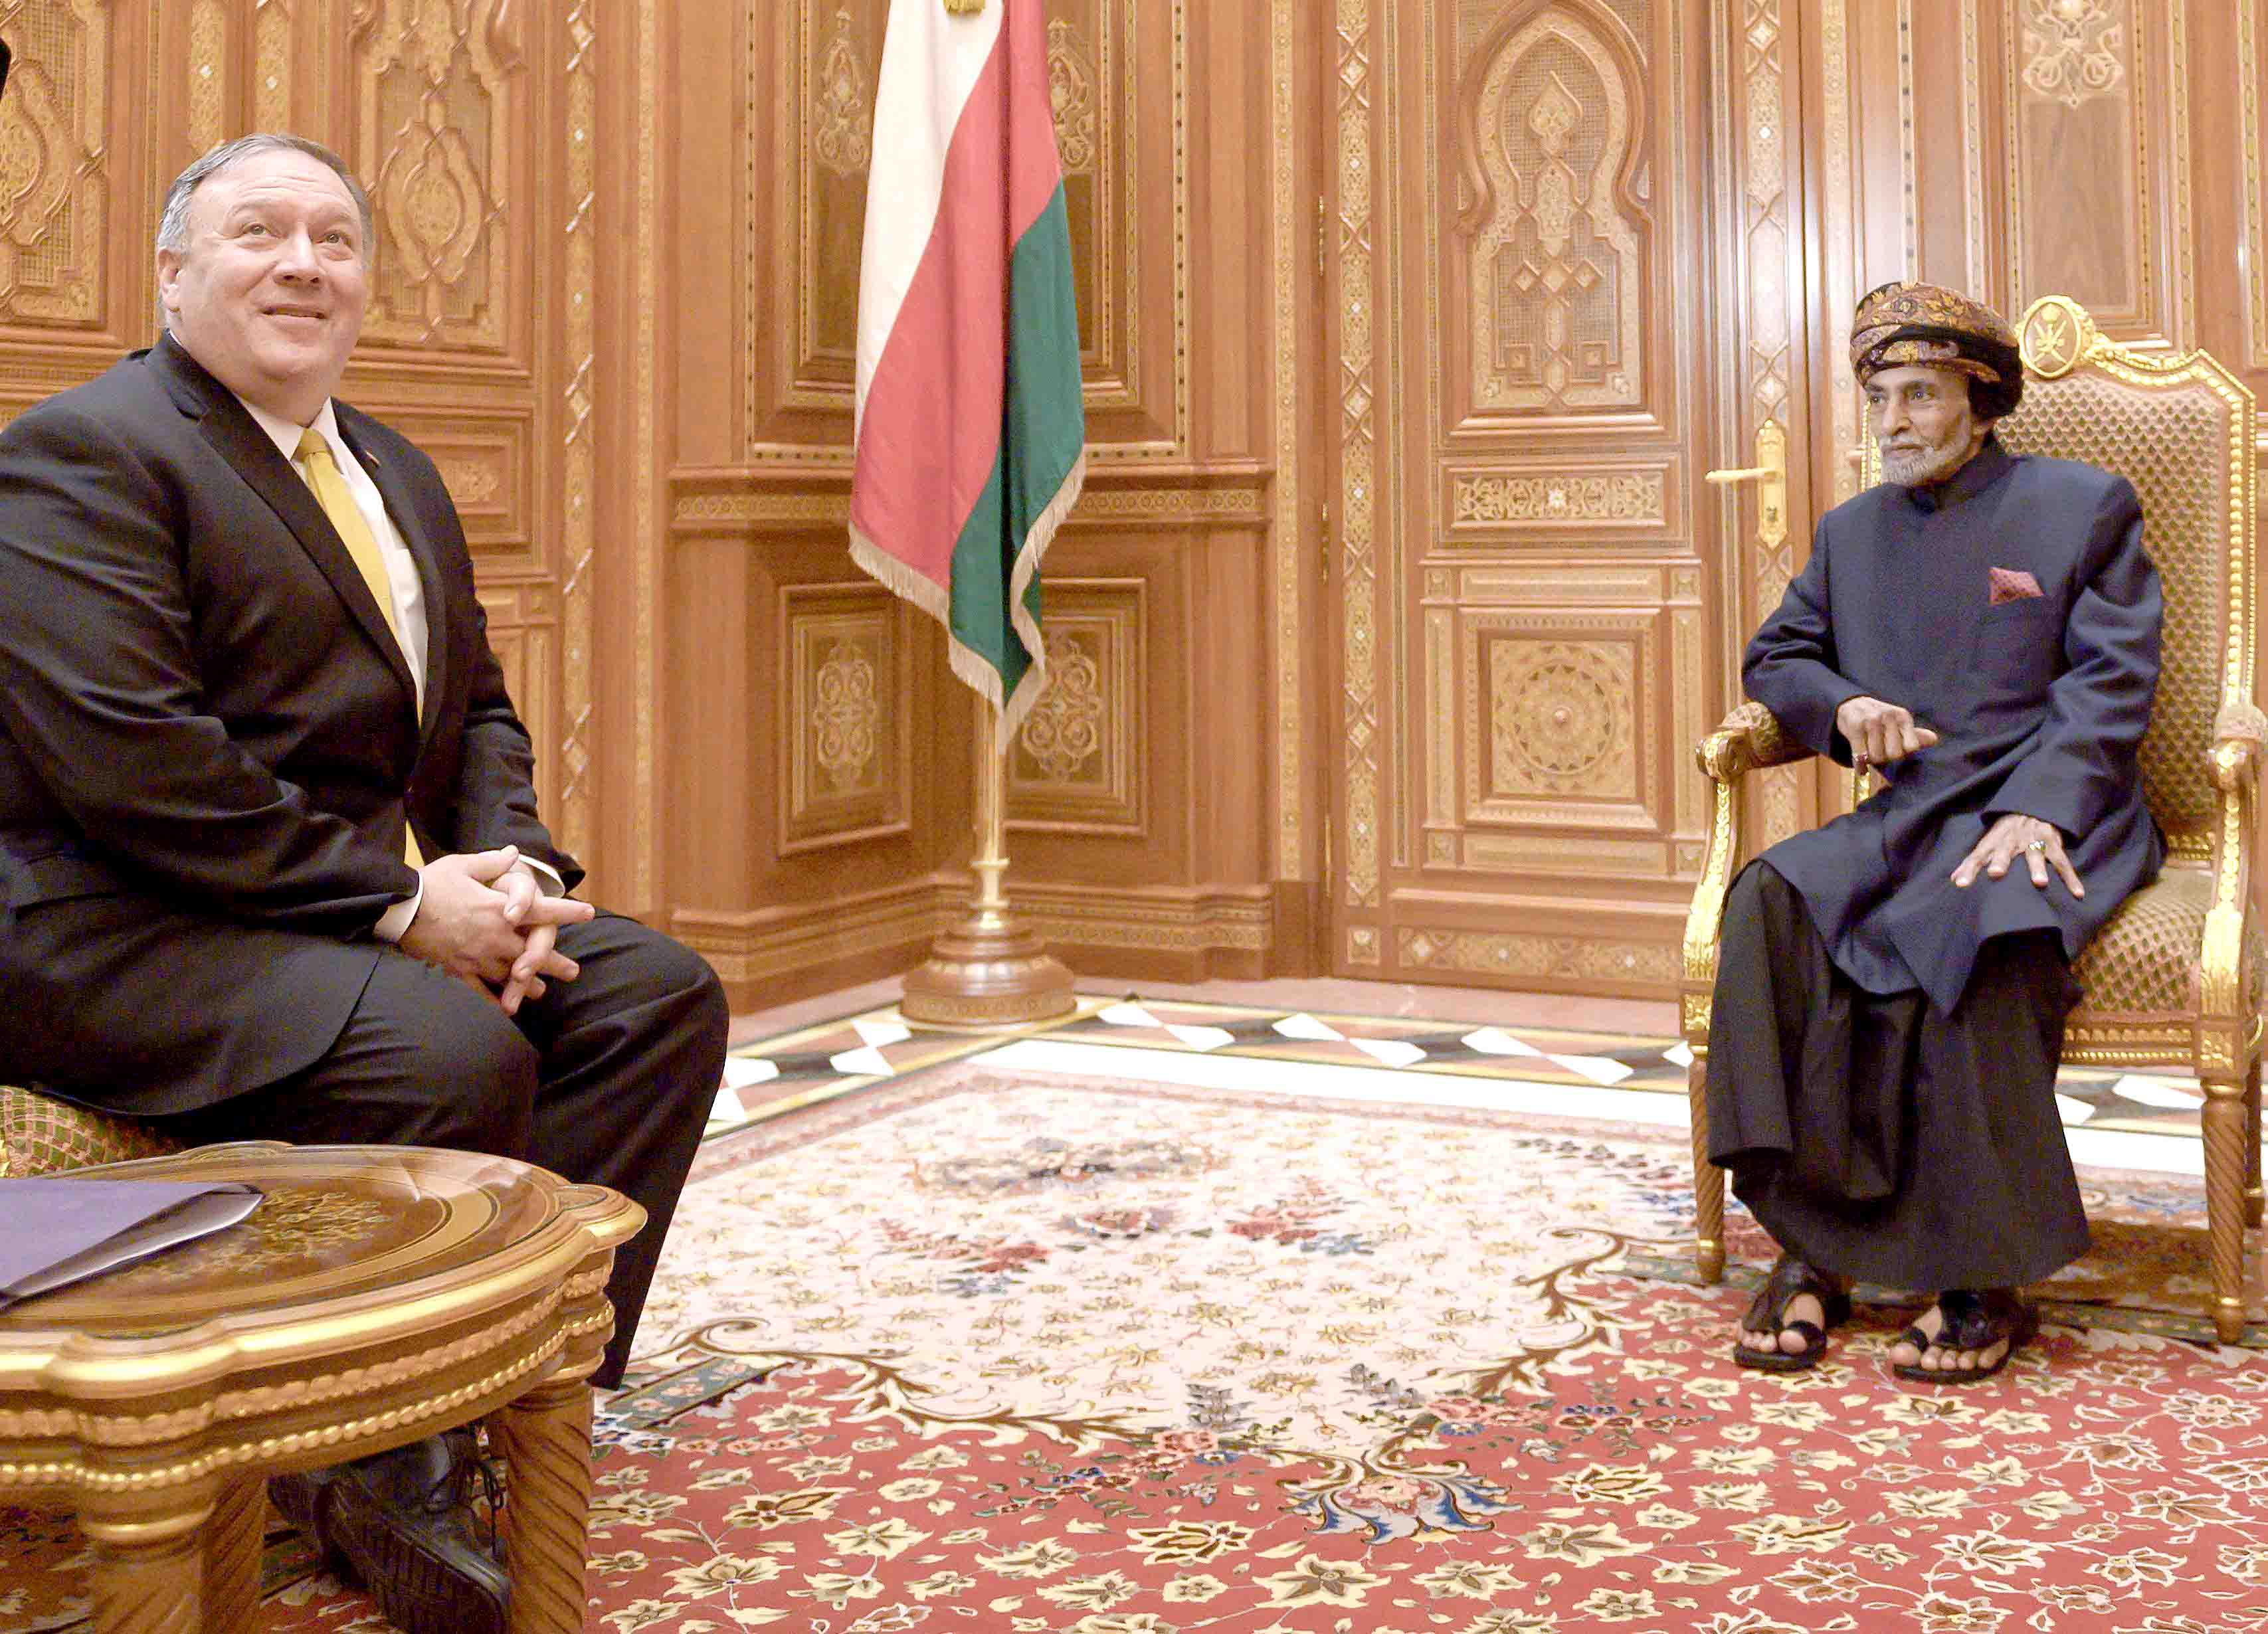 Evolving challenges. US Secretary of State Mike Pompeo (L) meets with Omani Sultan Qaboos bin Said Al Said in Muscat. (AP)